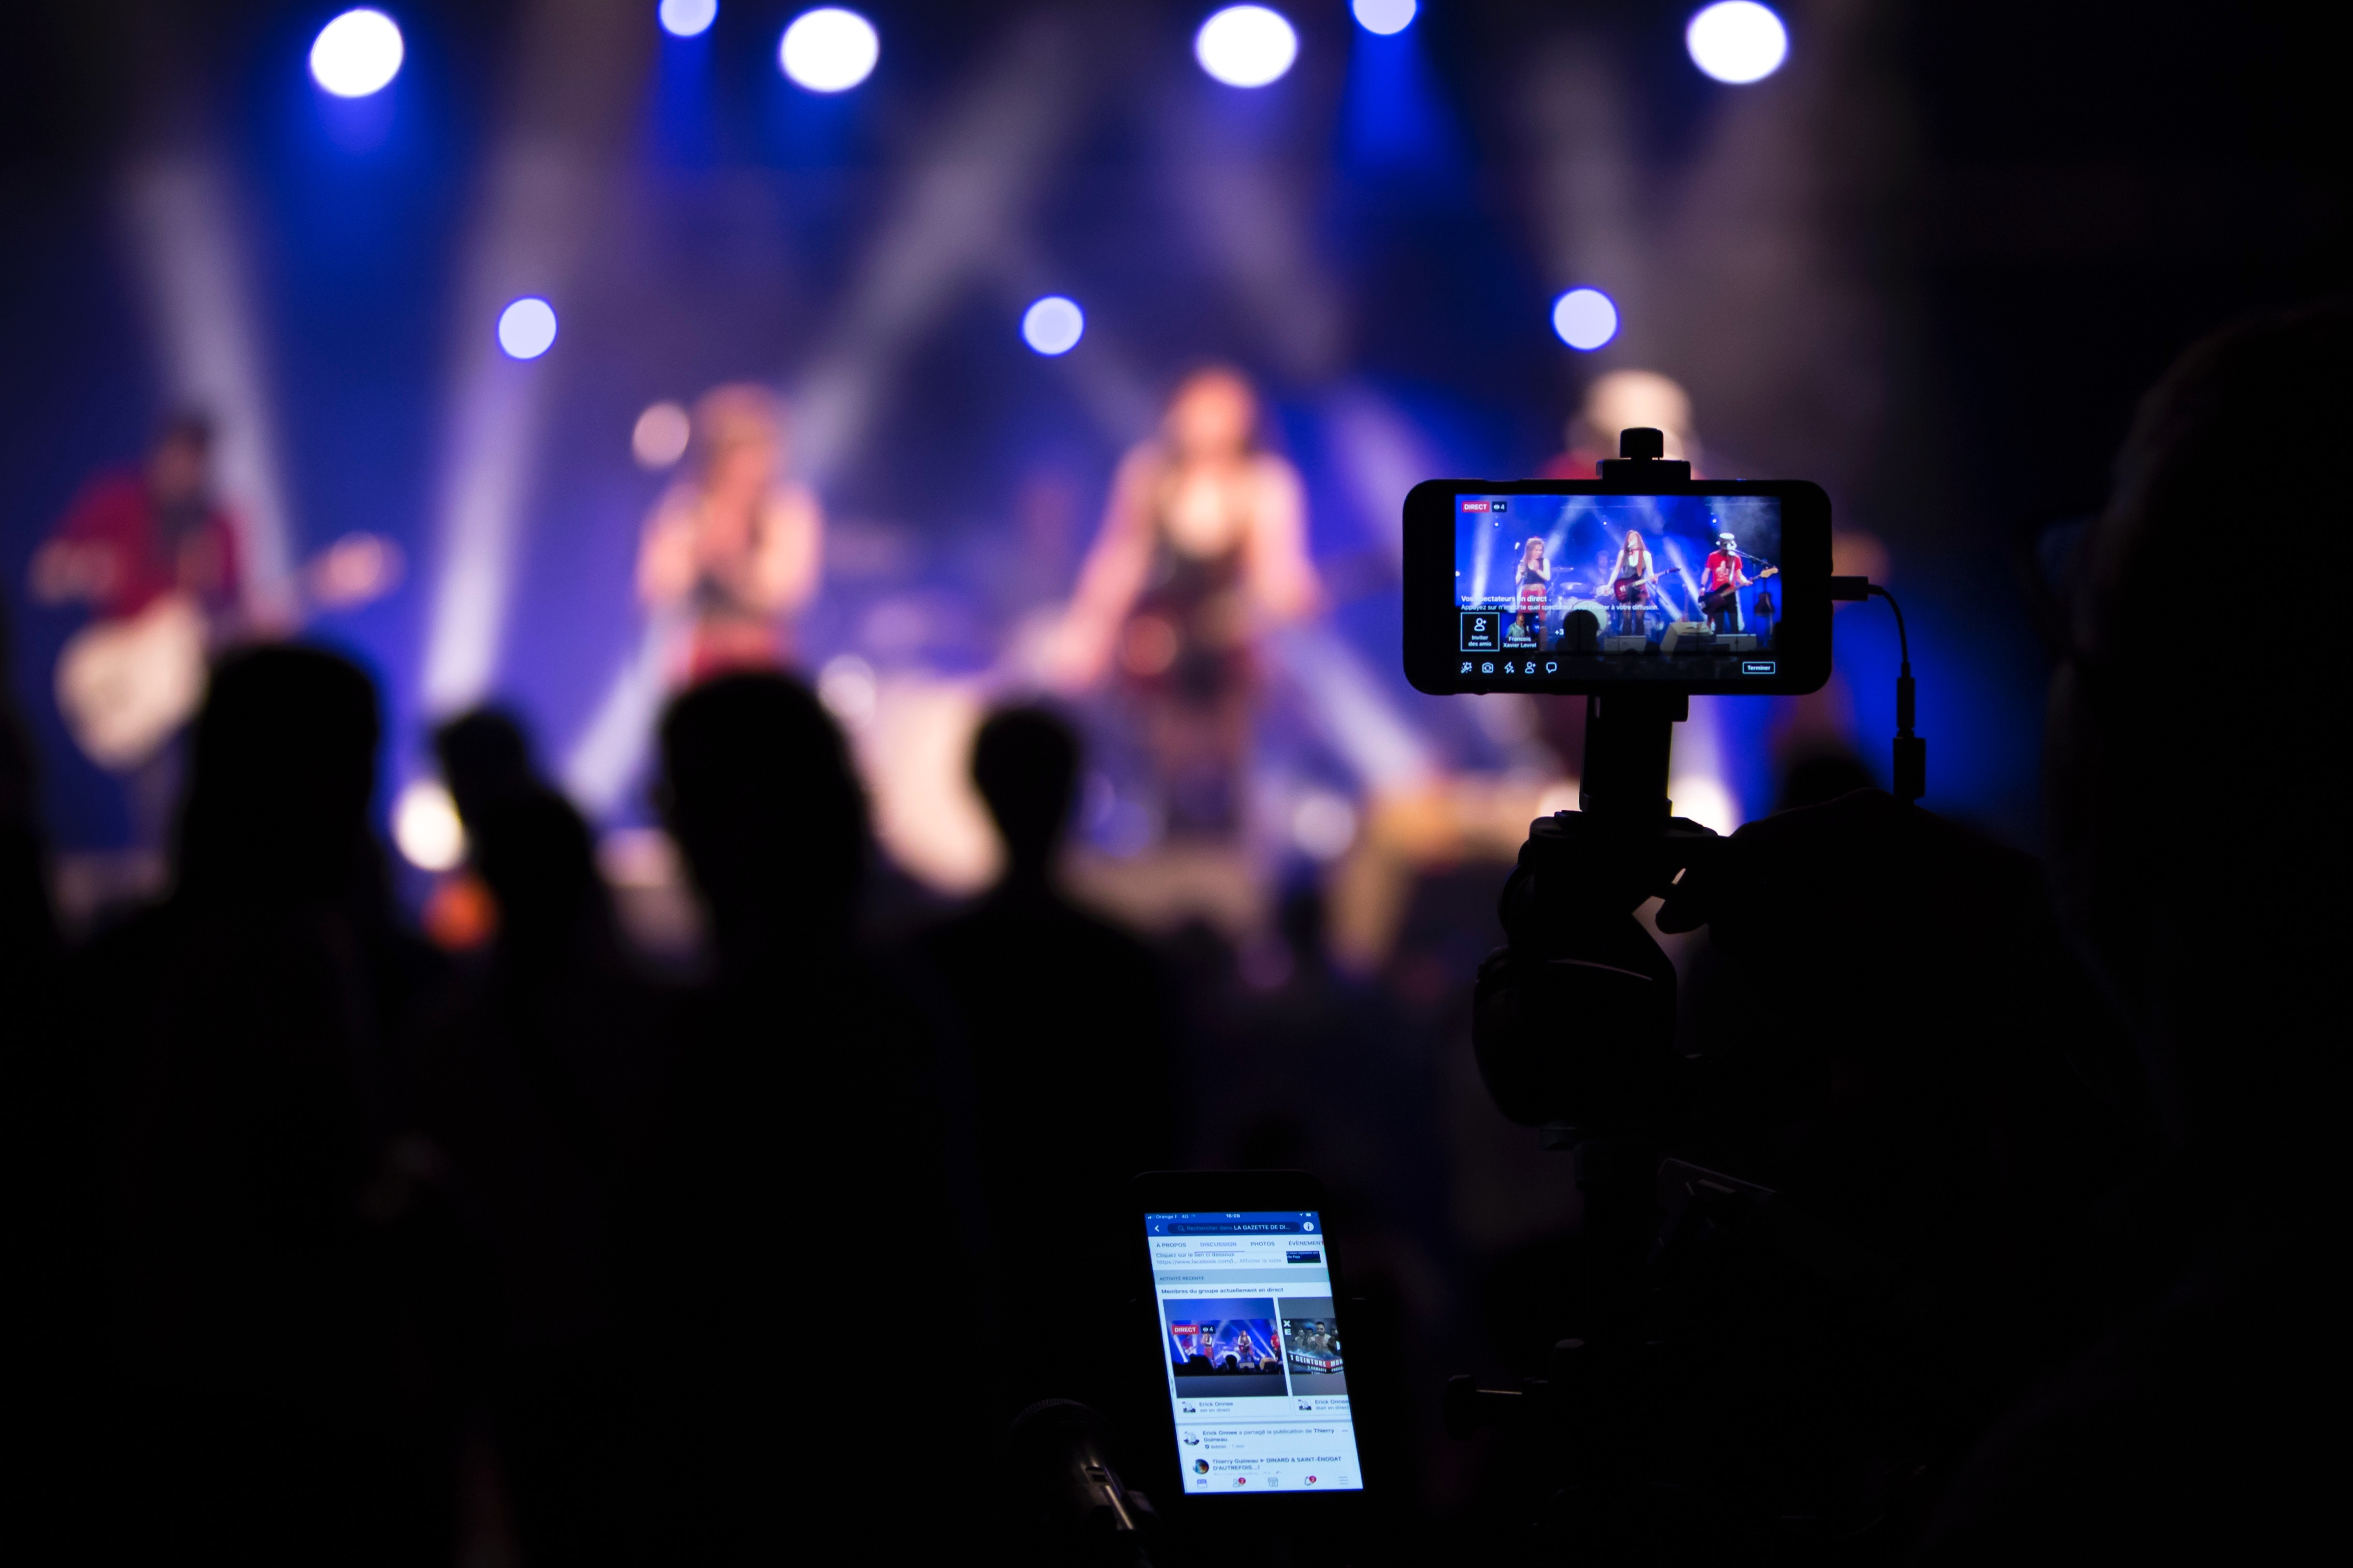 A mounted camera films a concert while someone next to it holds a phone and views the online stream from the camera